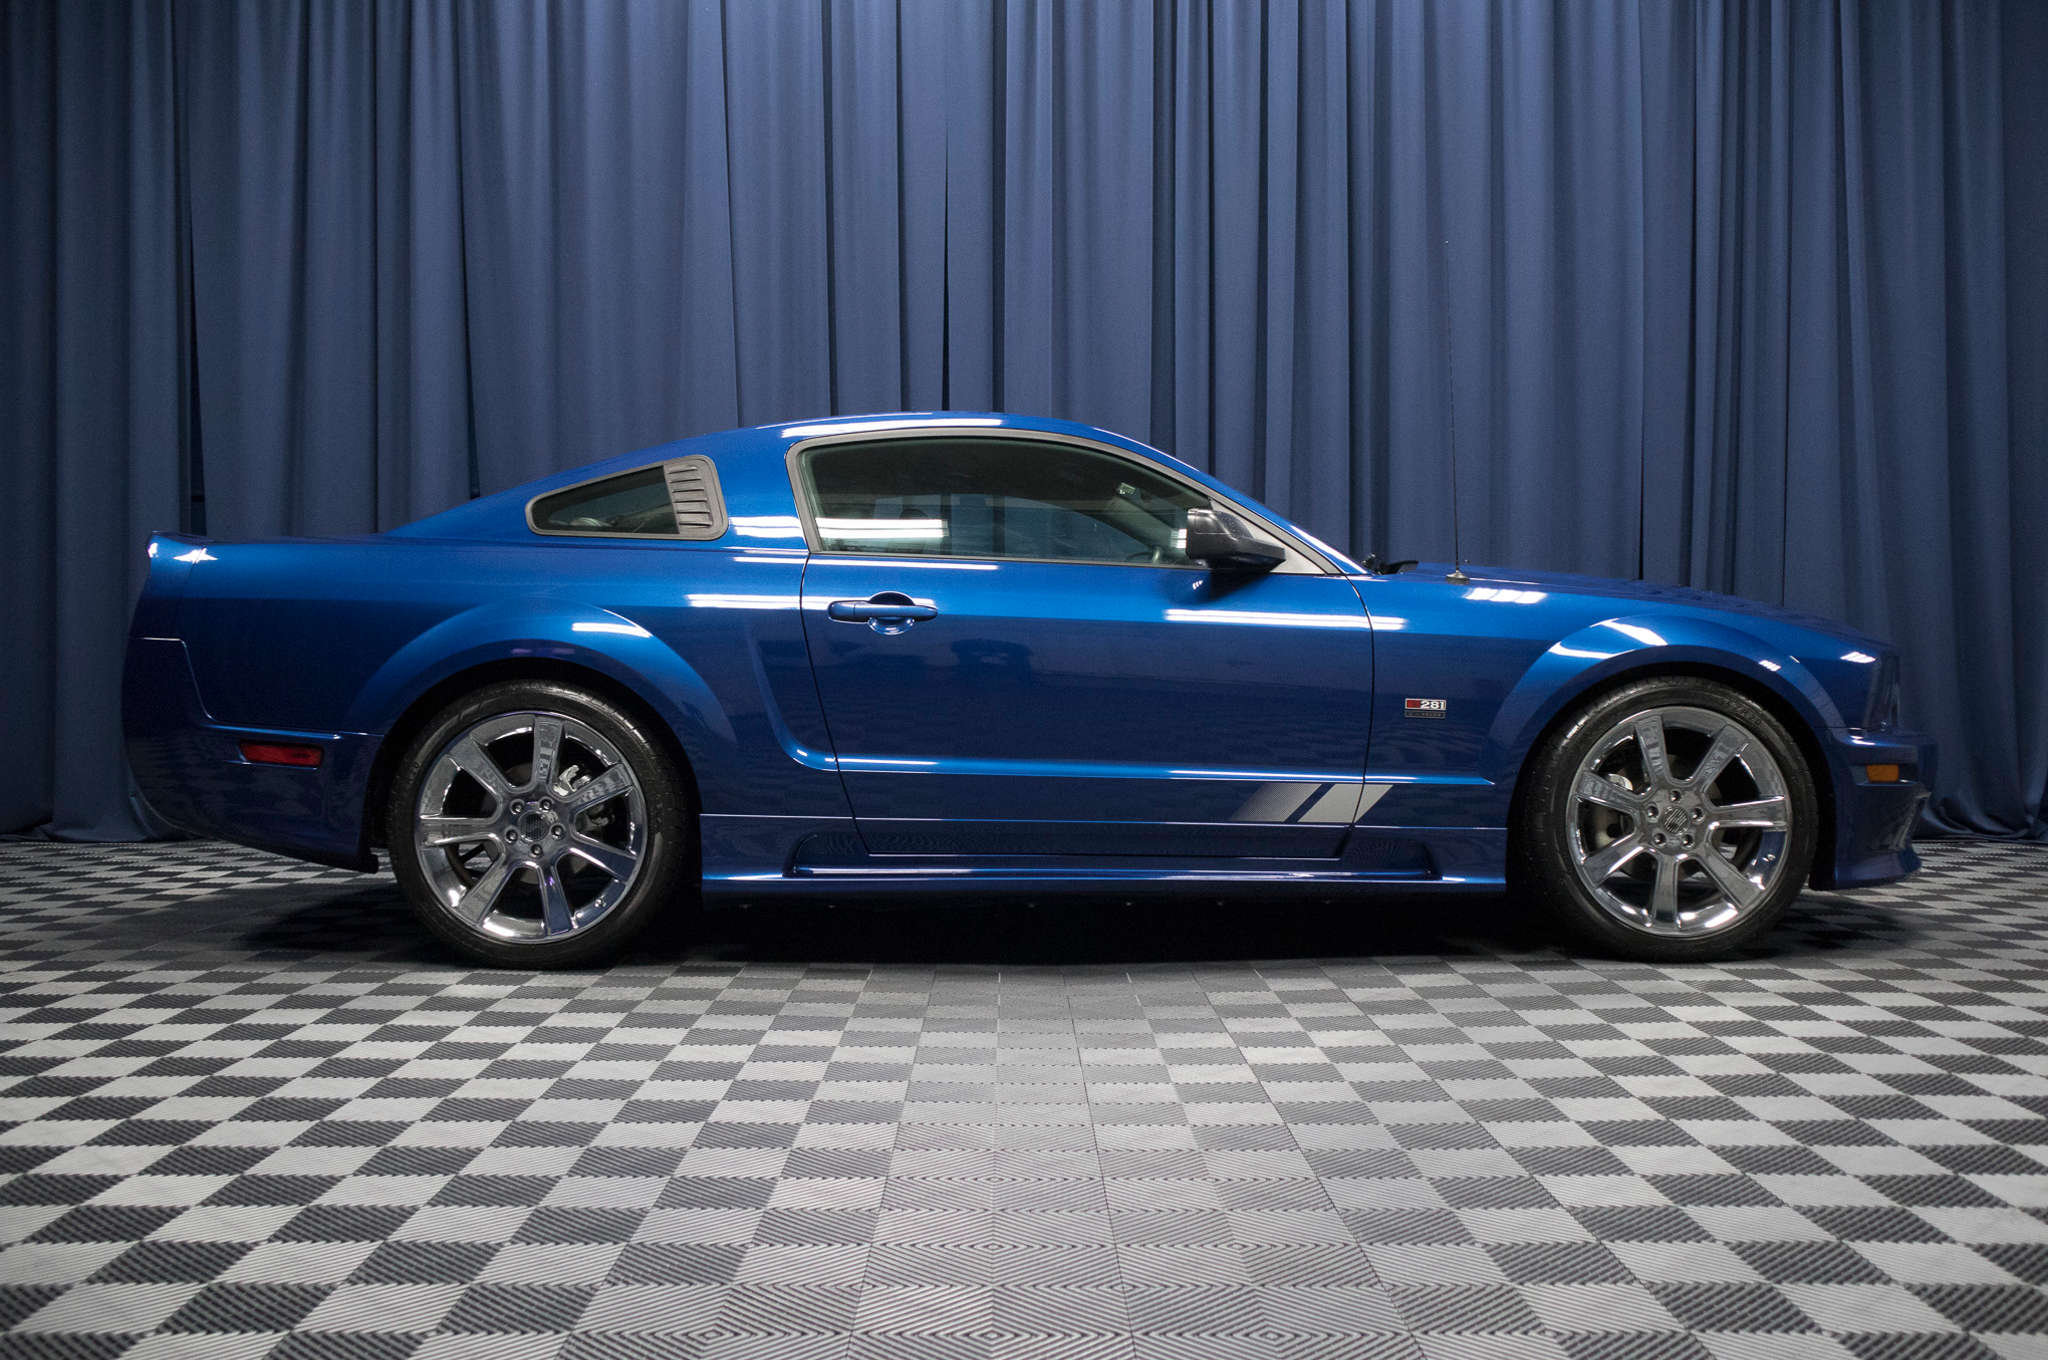 Used 2006 Ford Mustang S281 Saleen Rwd Coupe For Sale 48660